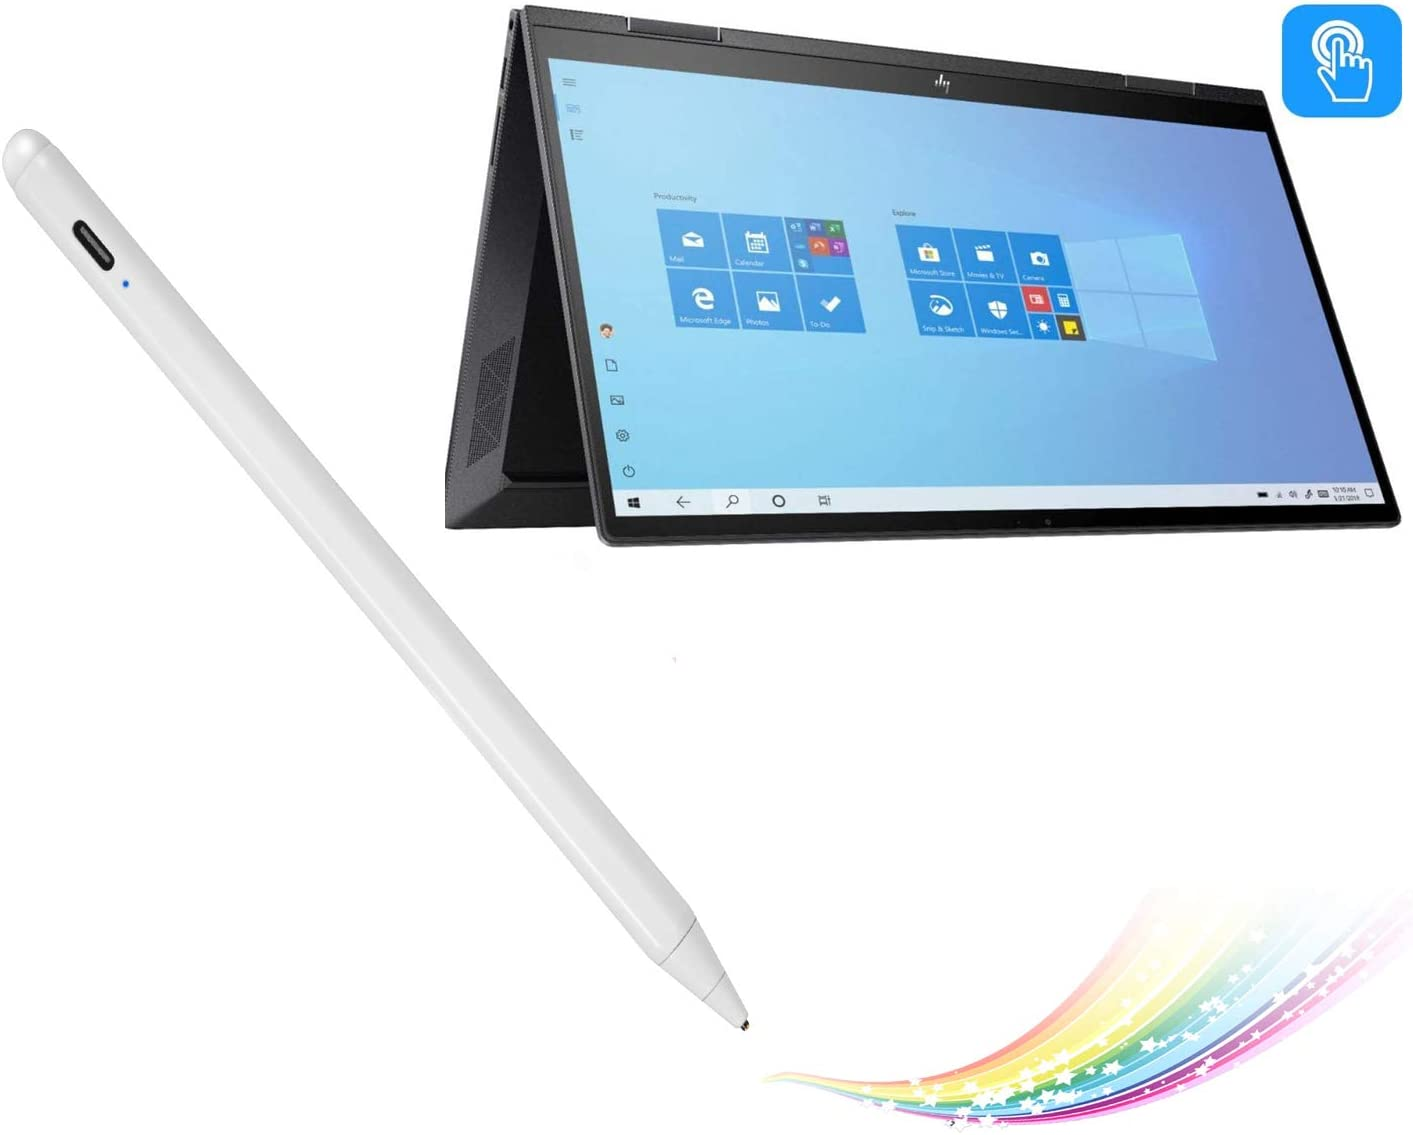 """Stylus Pen for HP Envy X360 Convertible 2-in-1 15.6"""" Pencil, Active Digital Pencil Compatible with HP Envy X360 2-in-1 Stylus Pen,Good for Sketching and Note-Taking with Type-C Recharge, White"""